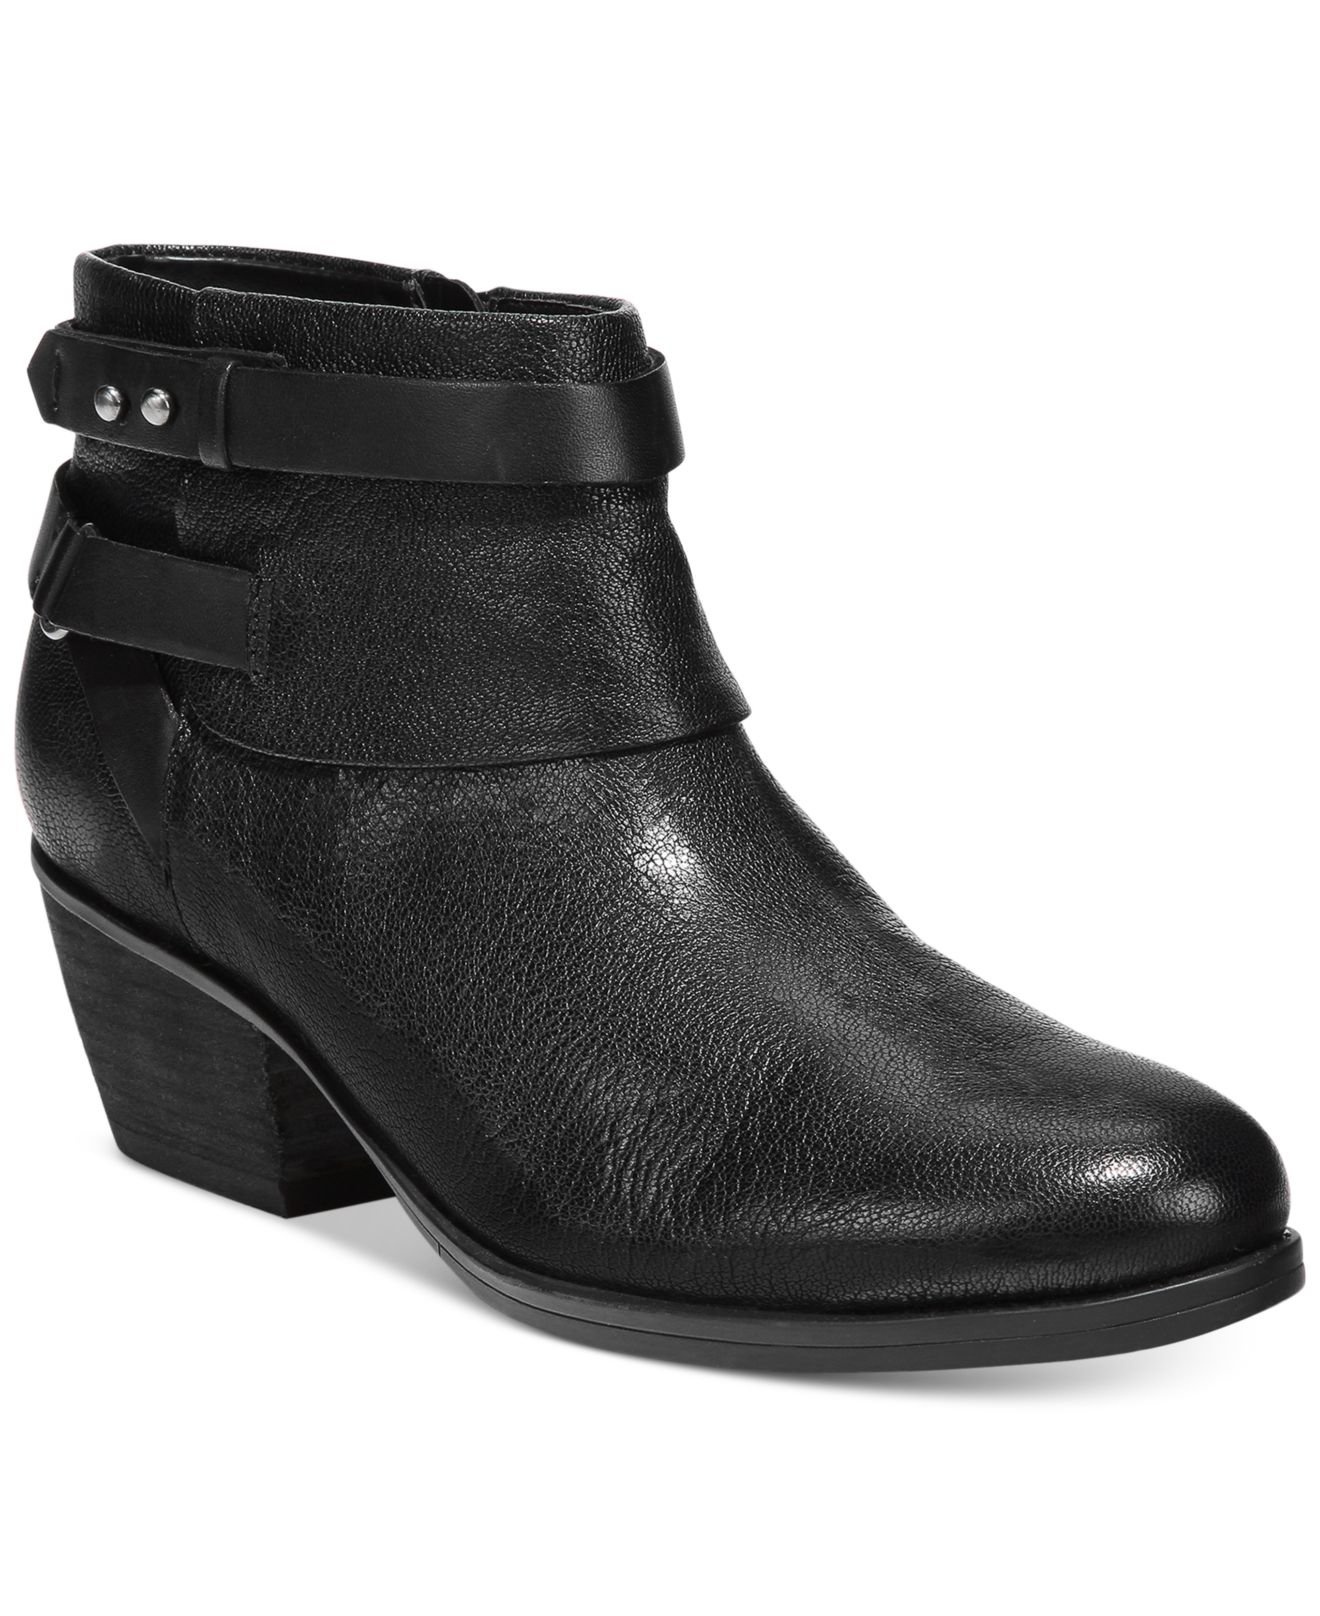 Shop the hottest selection of cute and stylish women's boots at affordable prices at 3wishes. An incredible selection of sexy women's boots. Free Shipping! Lolaa Leather Slip On Booties. $ $ Sexy Boots. brown, or black for a more laid back look, or go for hot and neon colors for a fun appearance. Pairing sexy boots with.